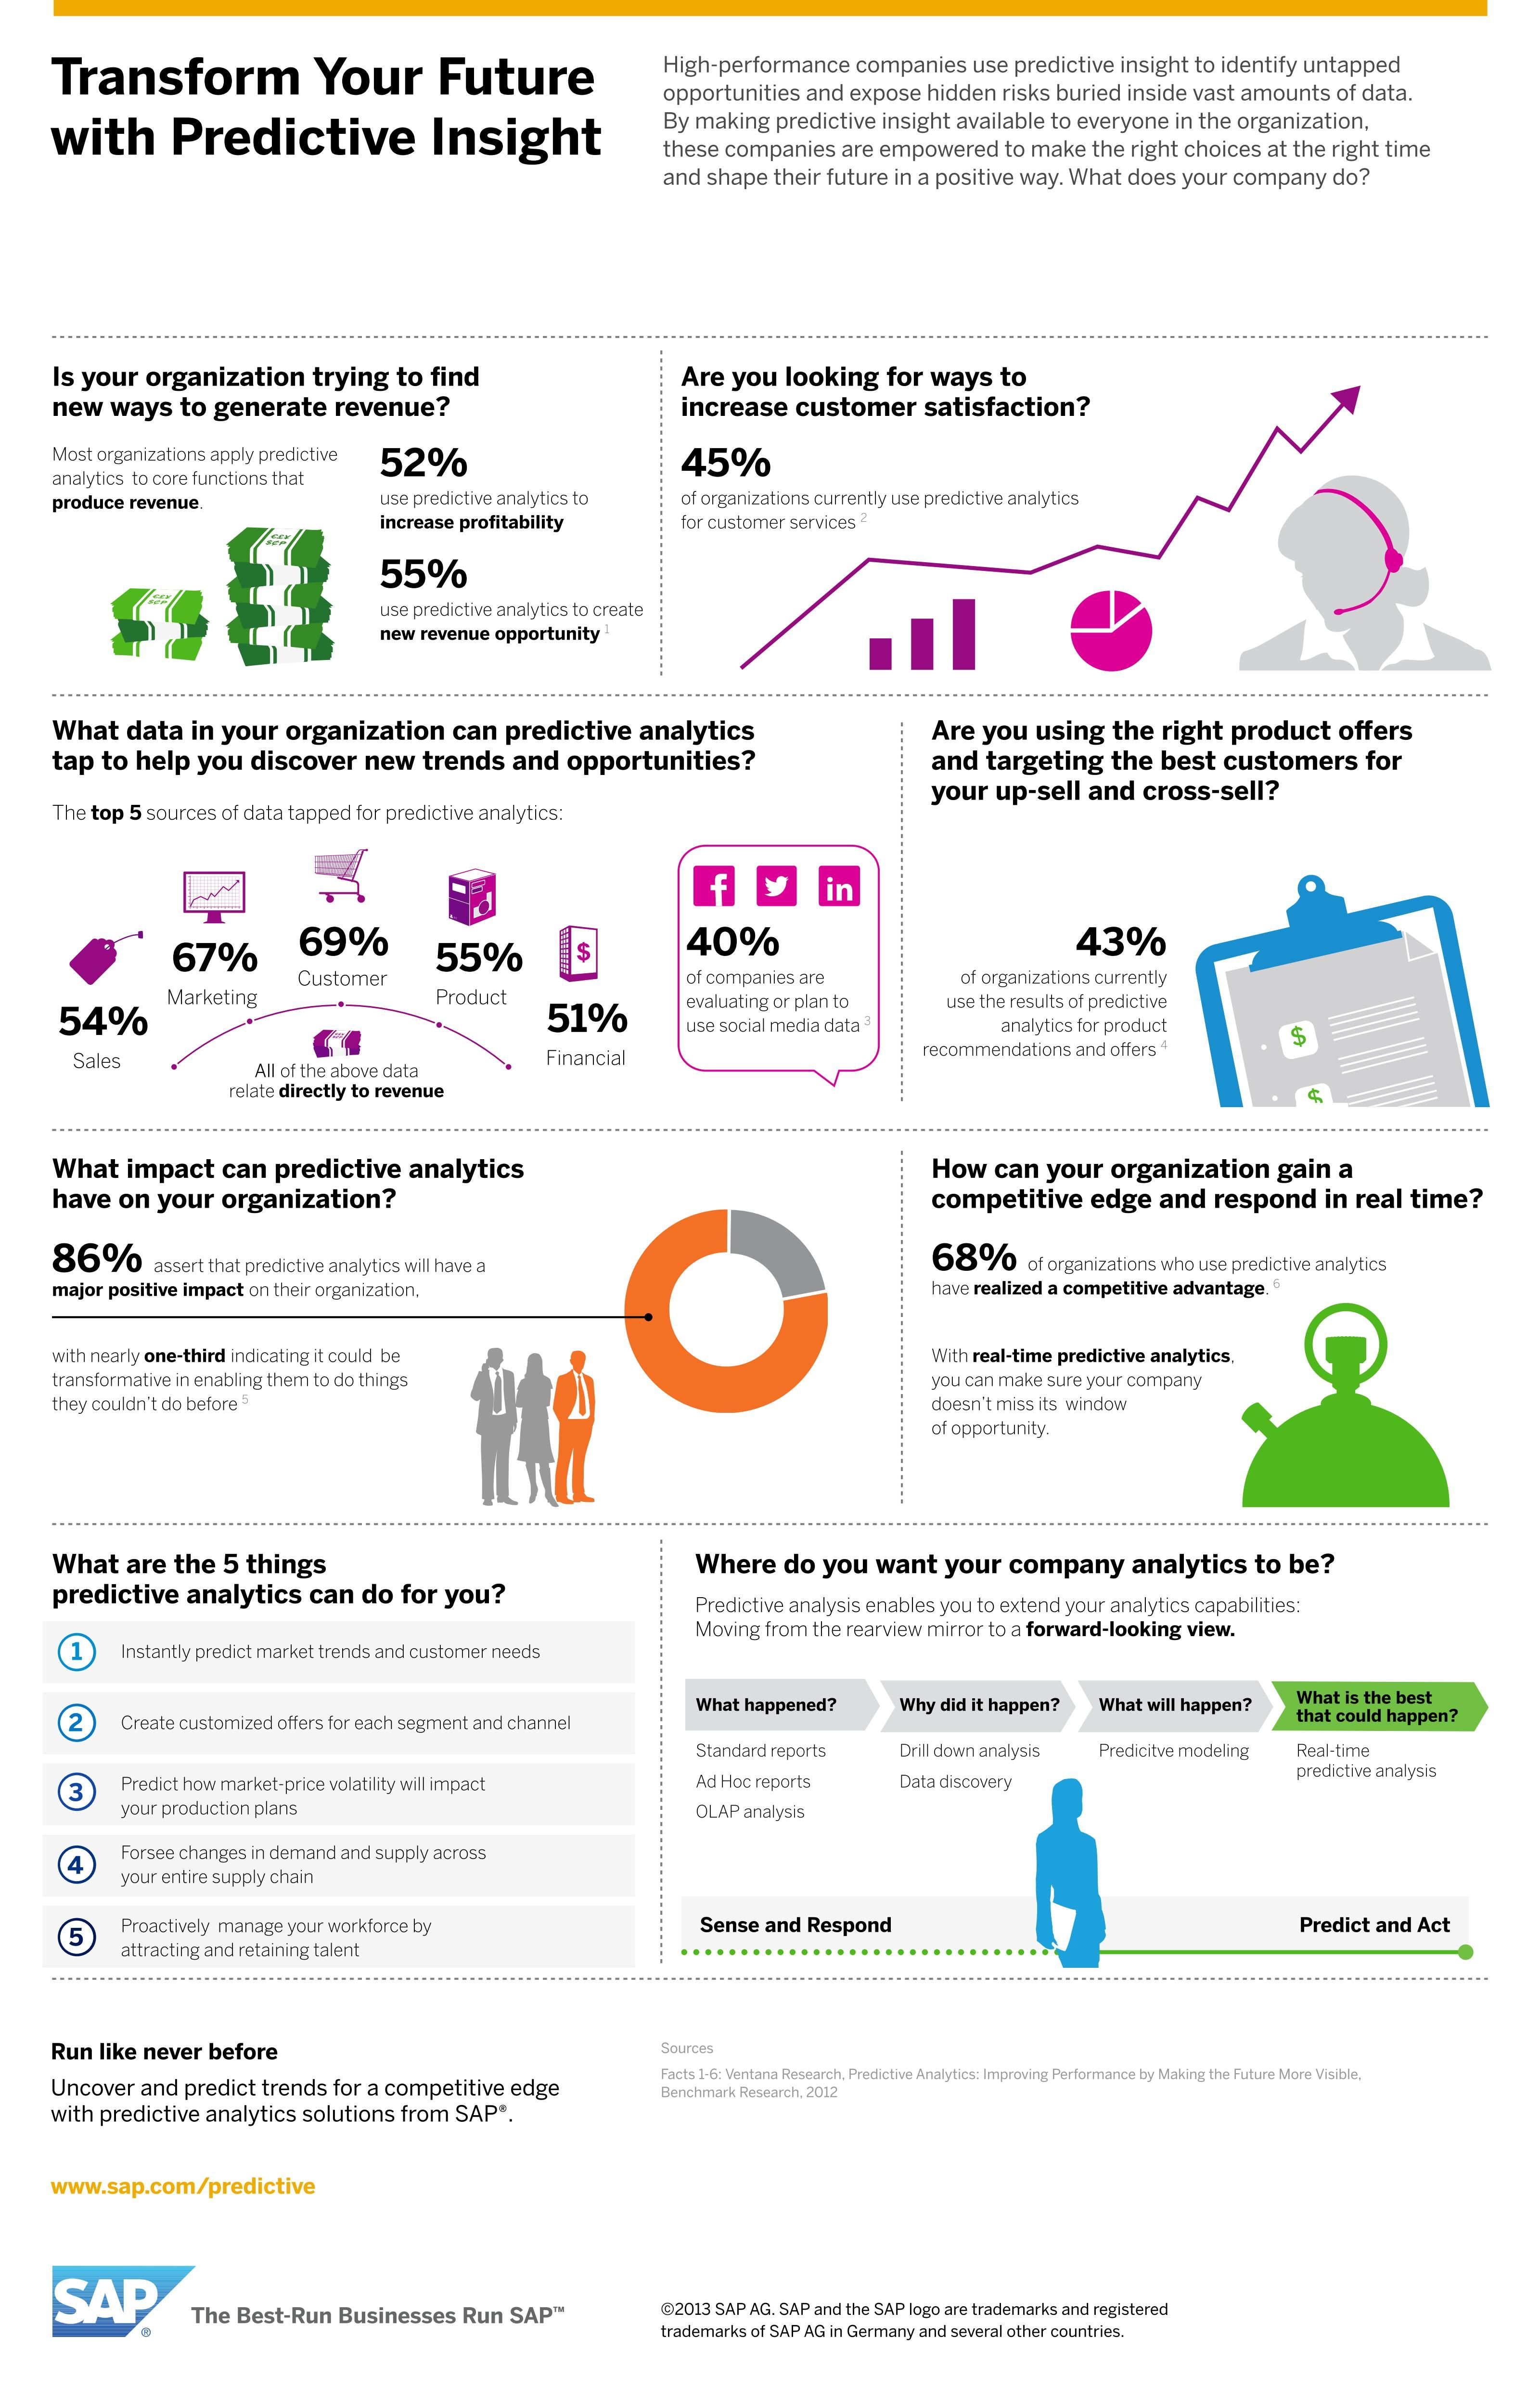 68% of organizations who use predictive analytics have realized a